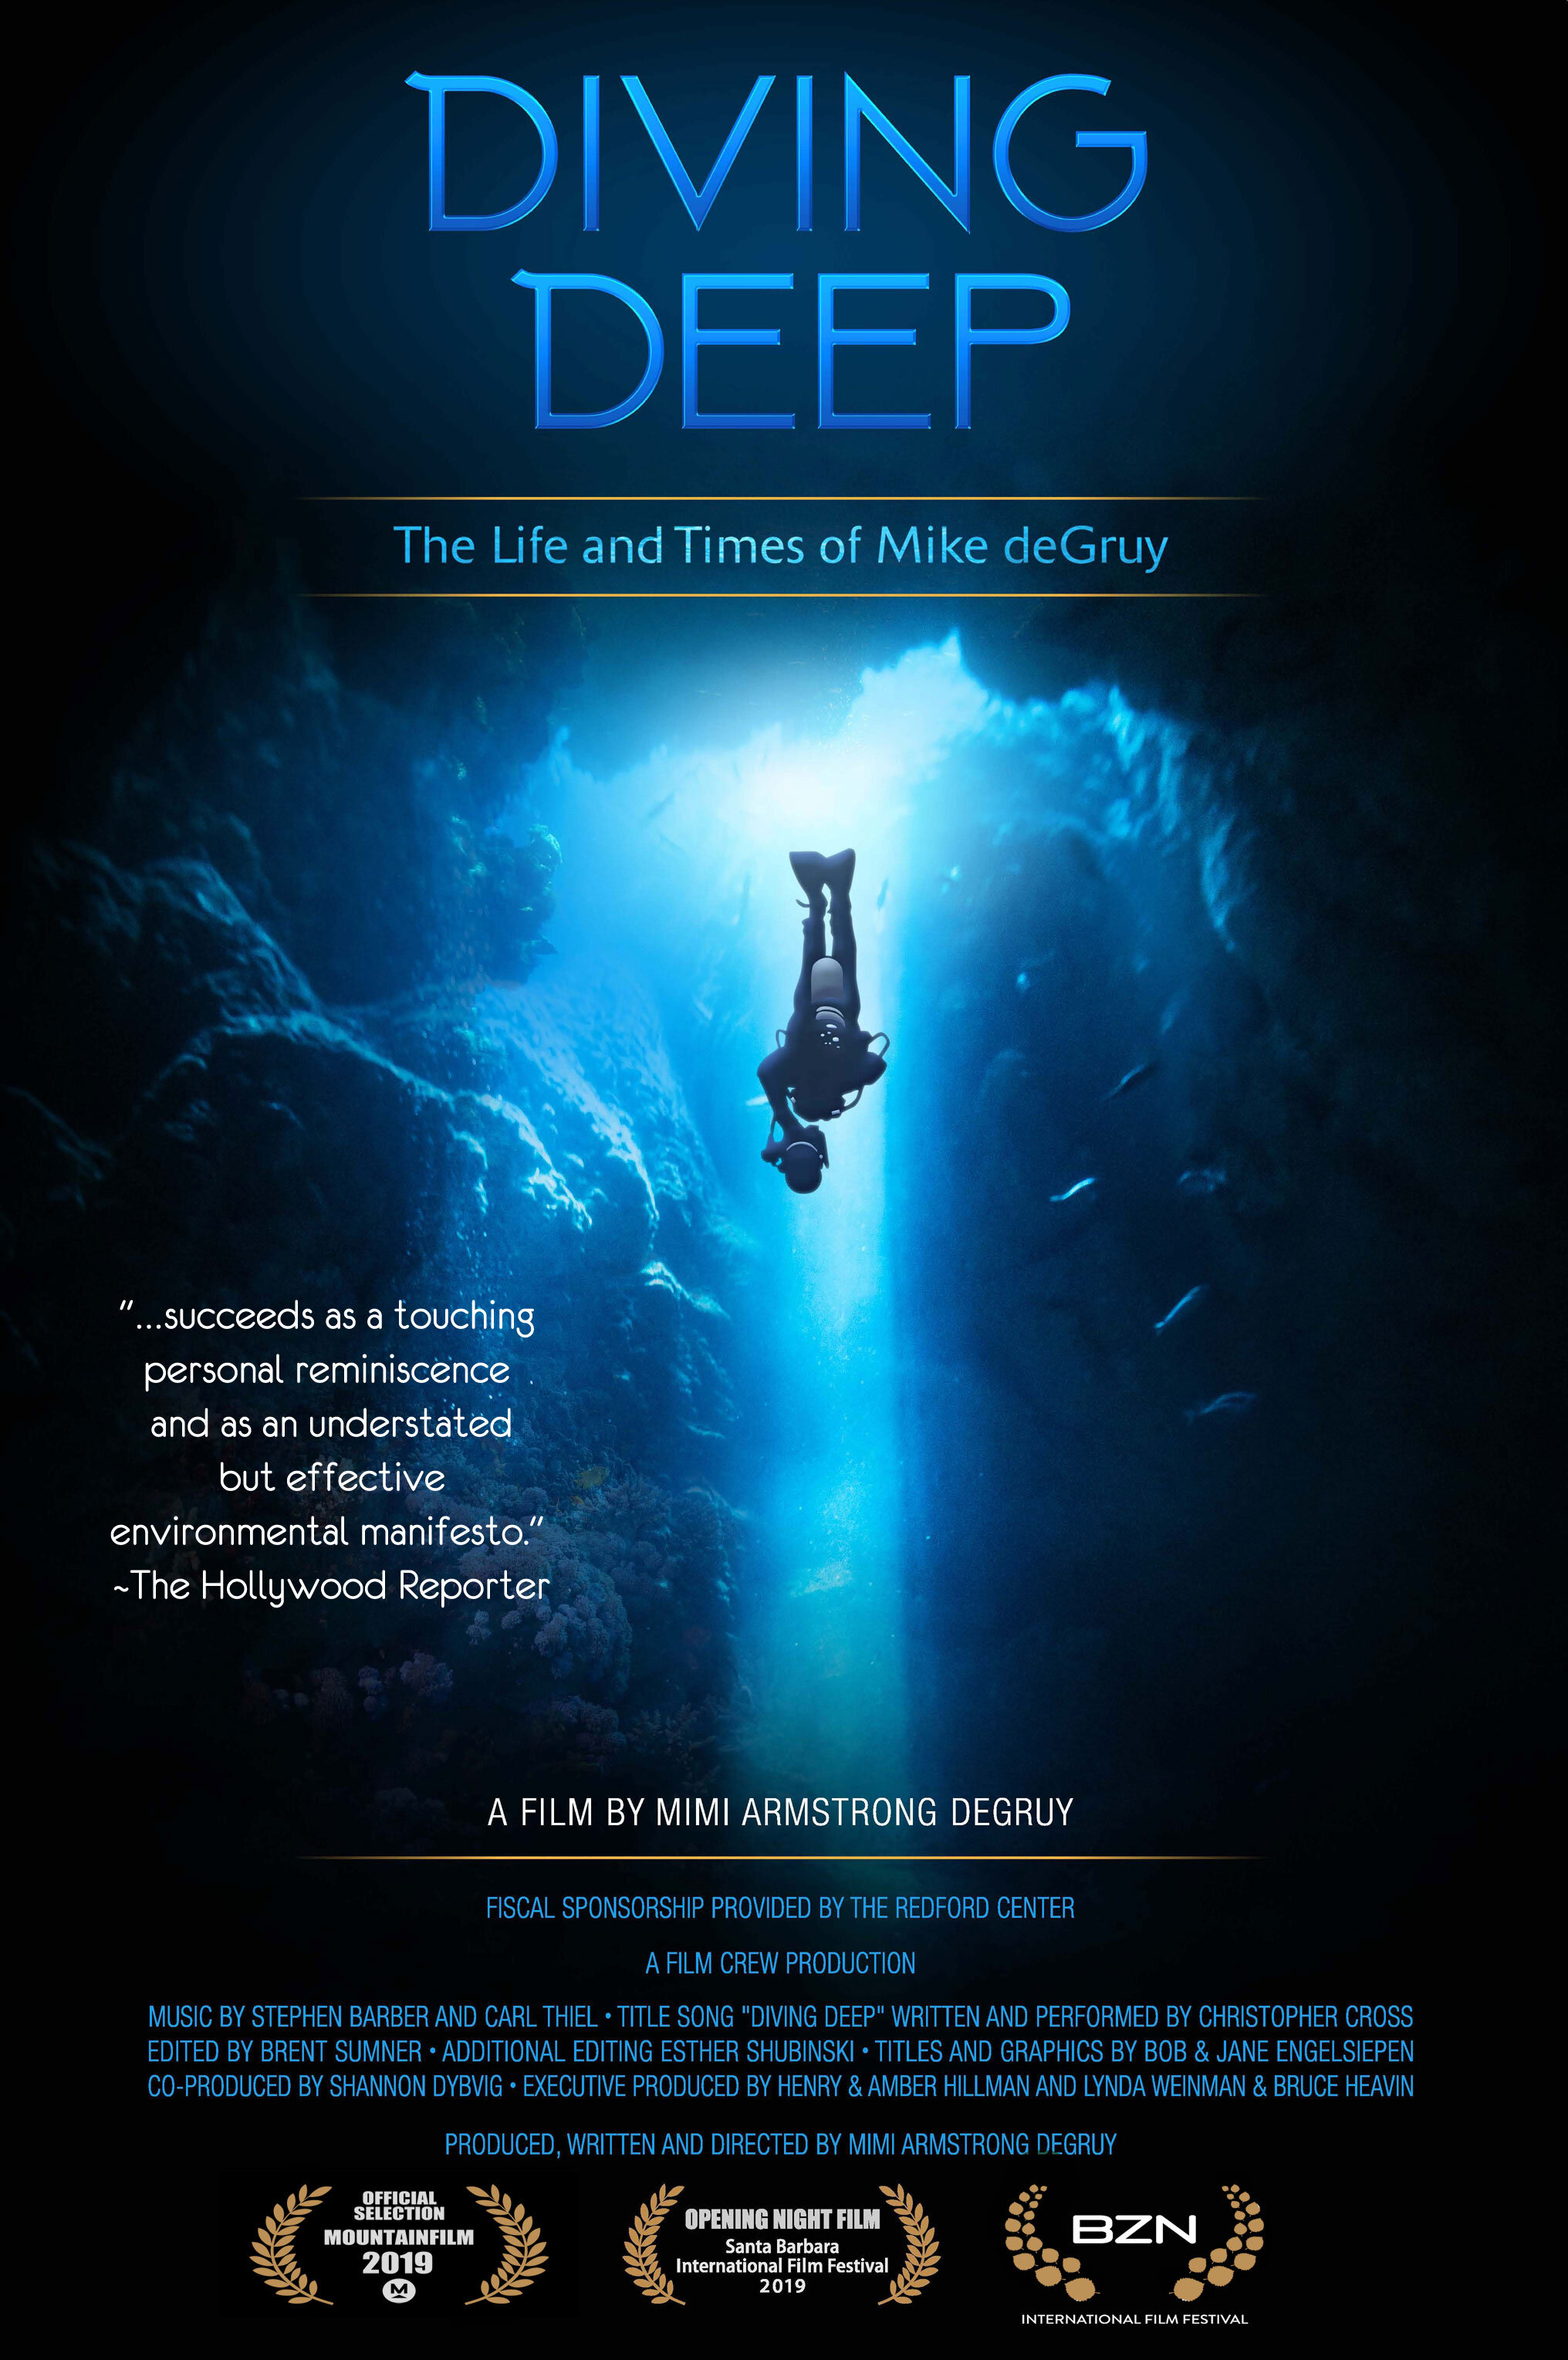 Diving-Deep-Poster-with-laurels-and-quoteweb.jpg